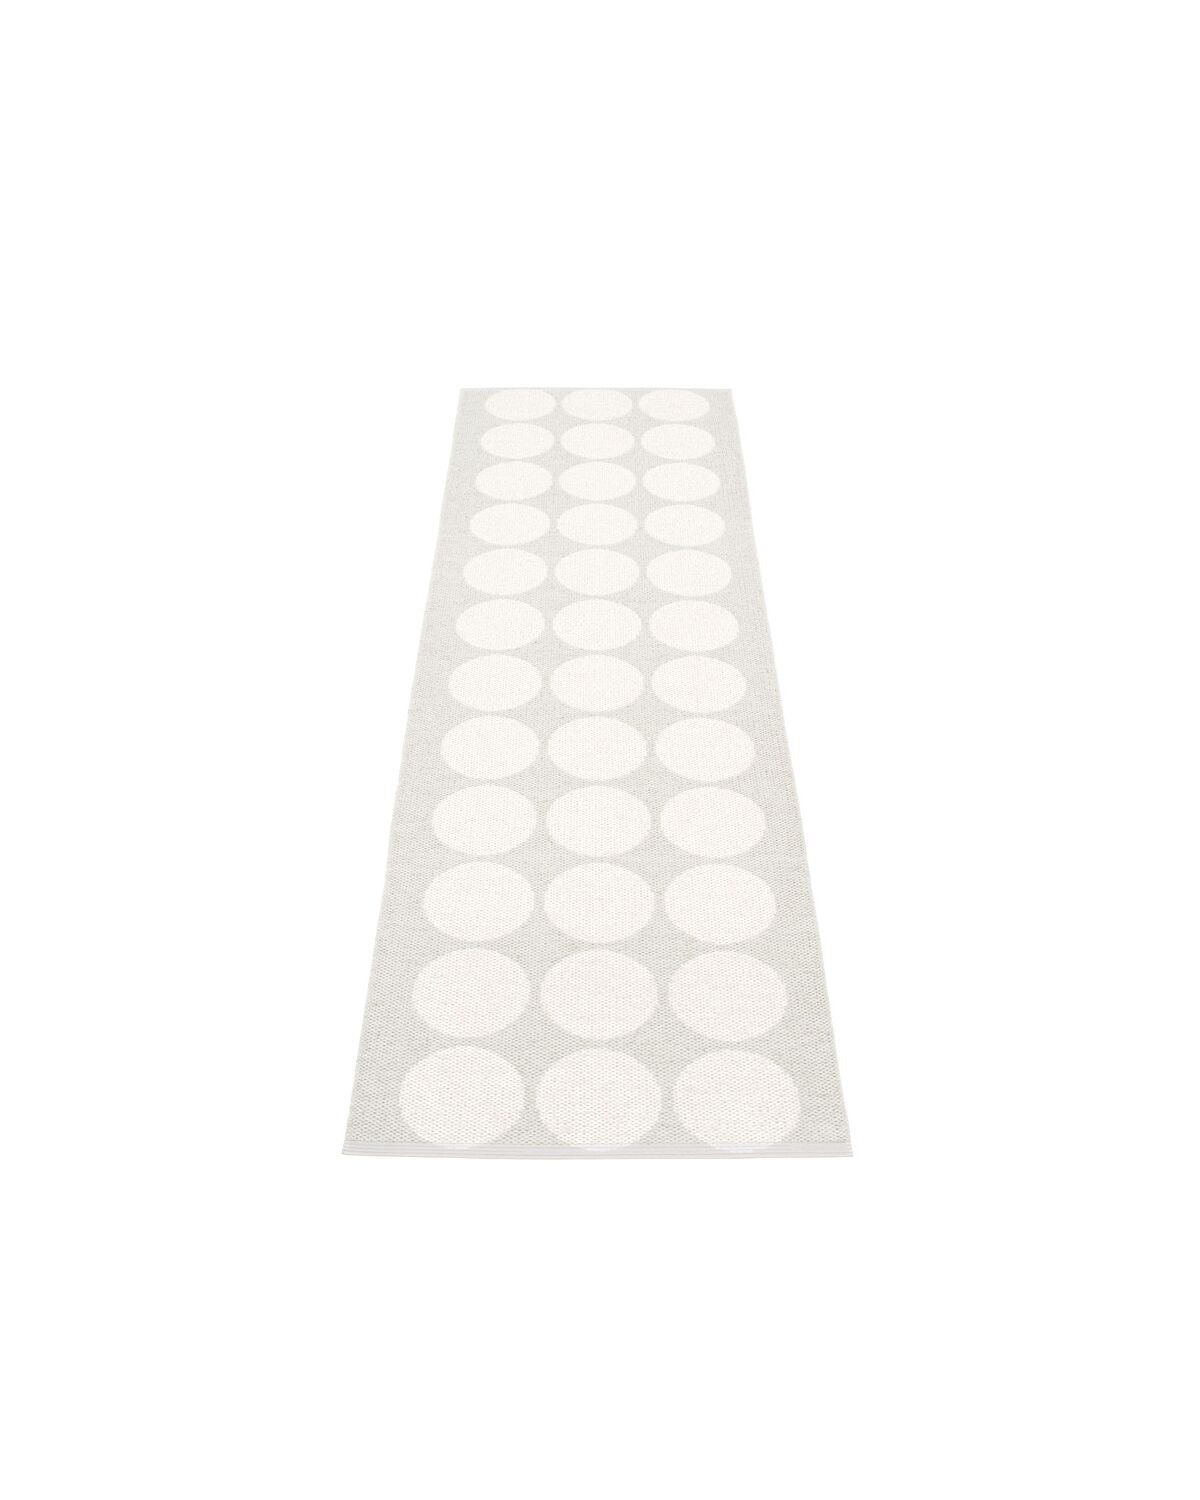 Rug HUGO White Metallic